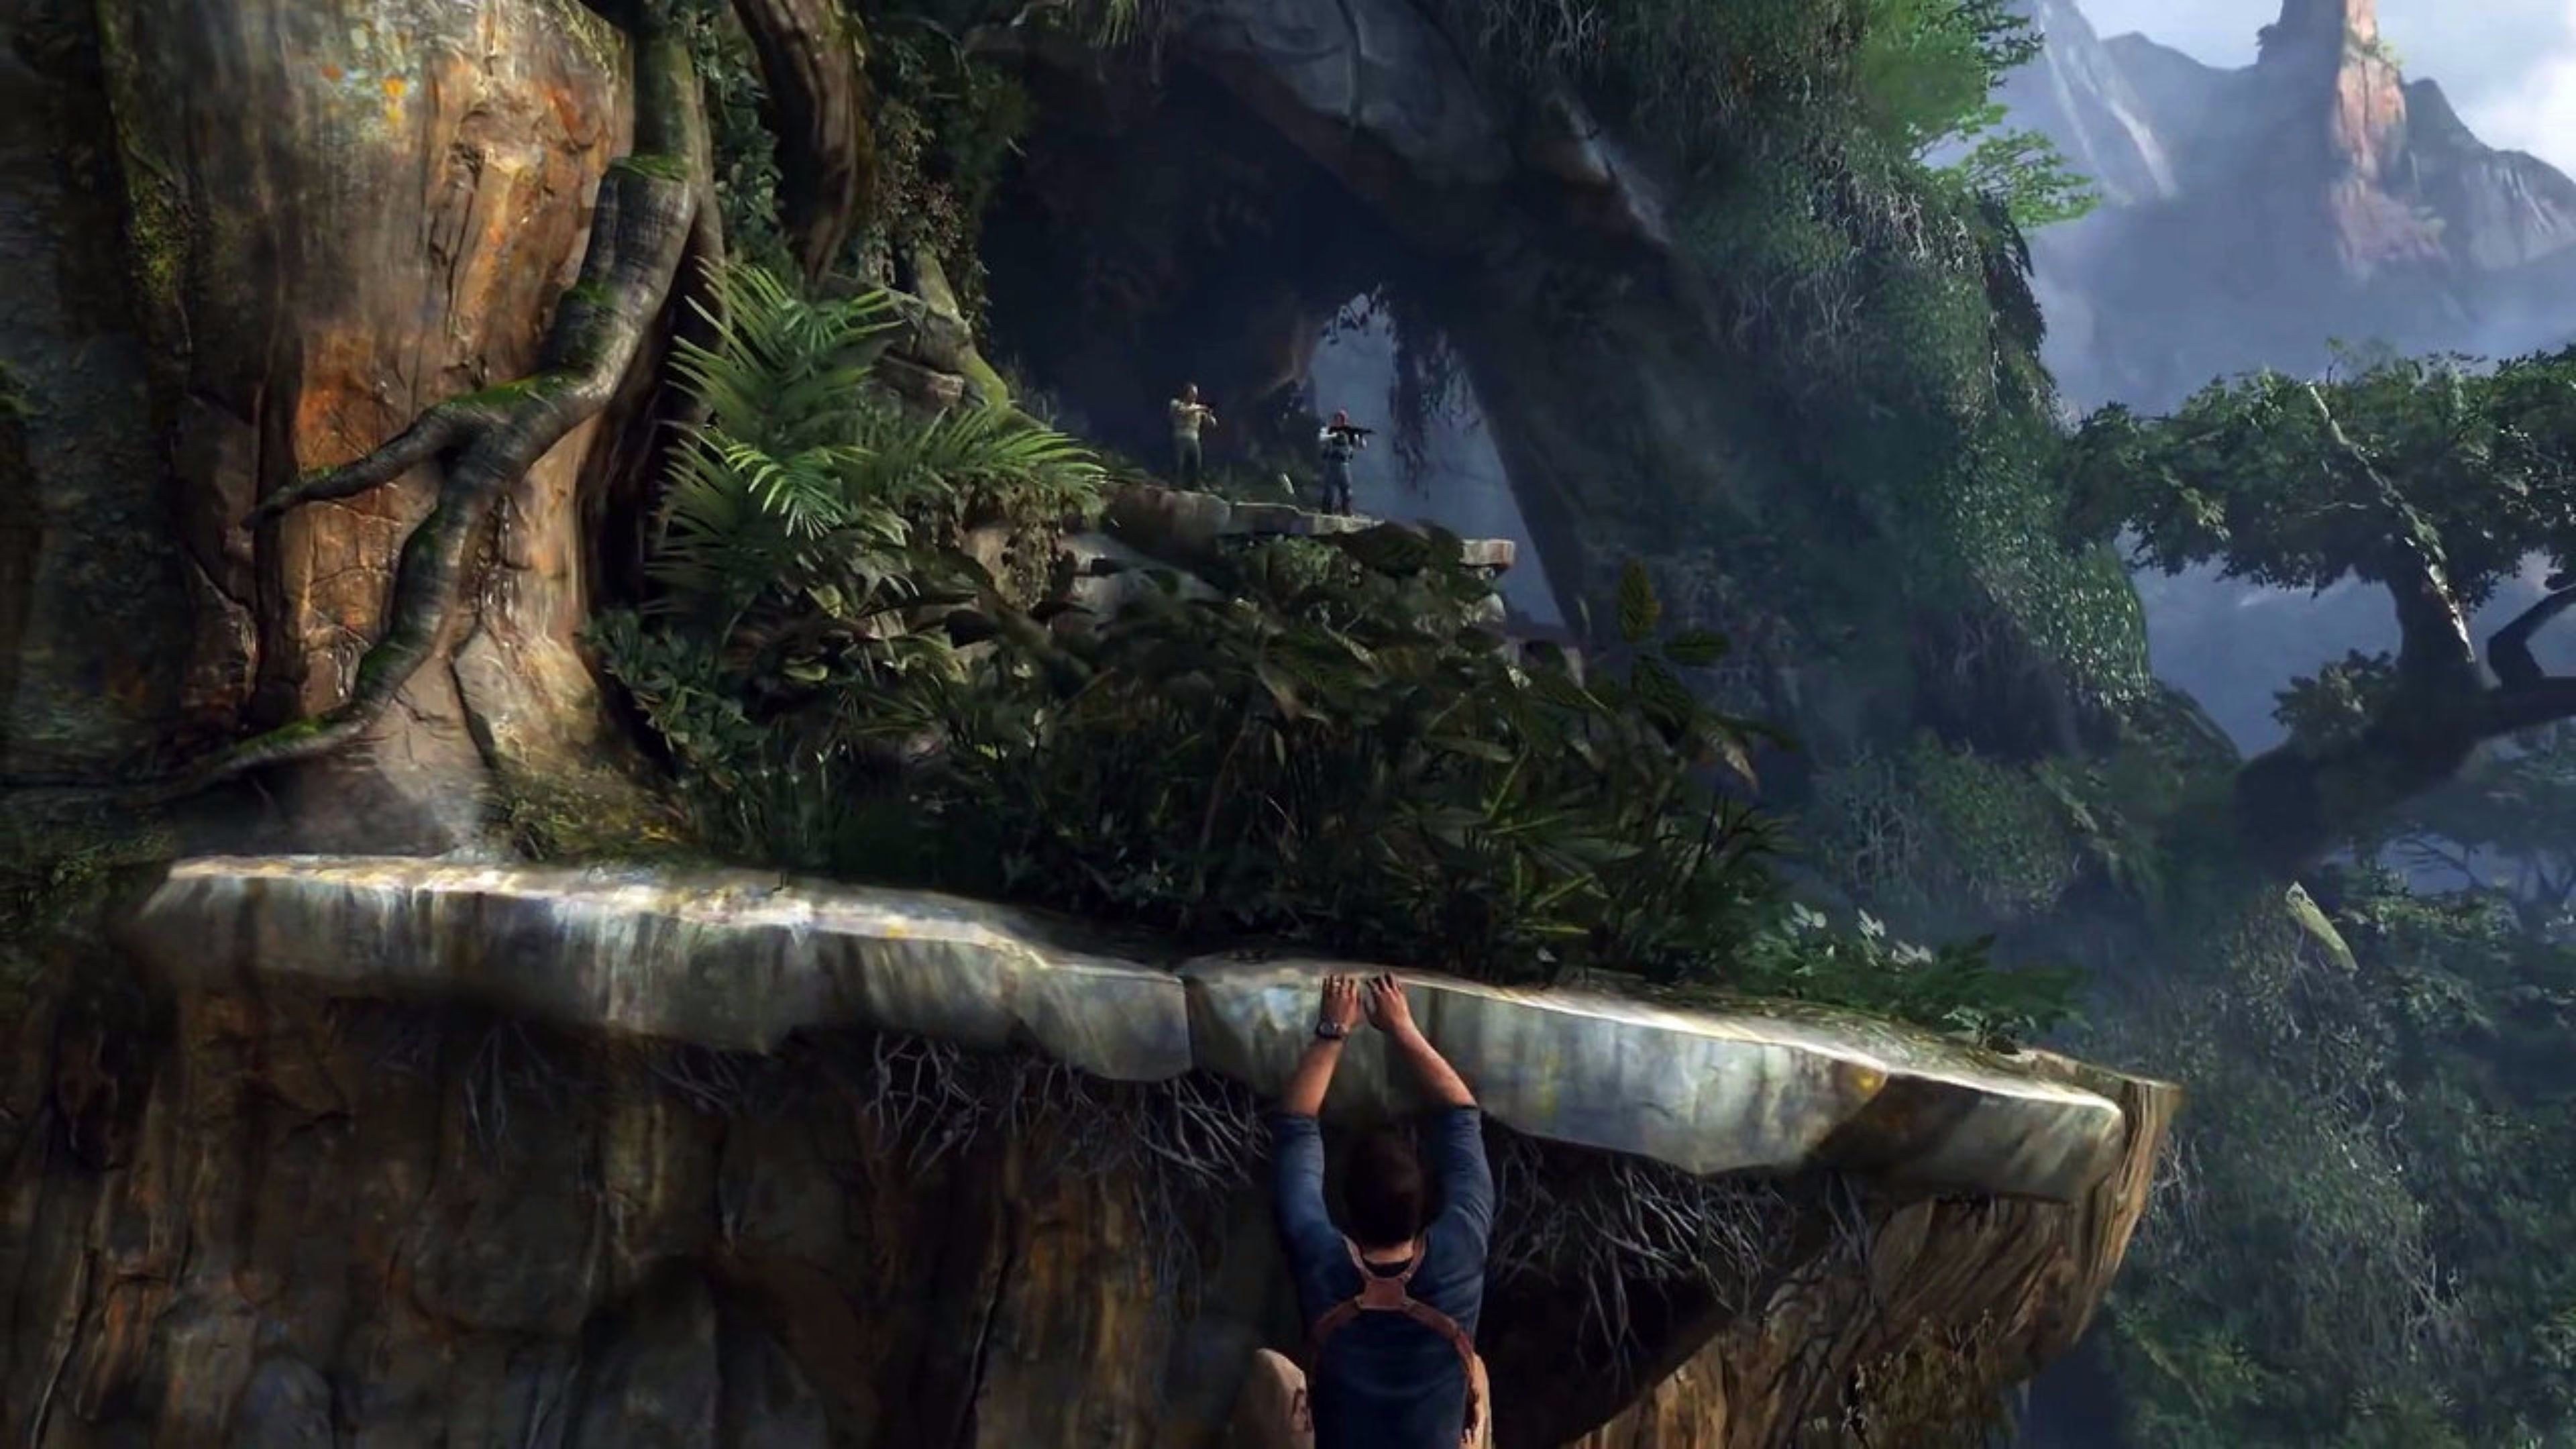 uncharted 4 wallpaper images (28)